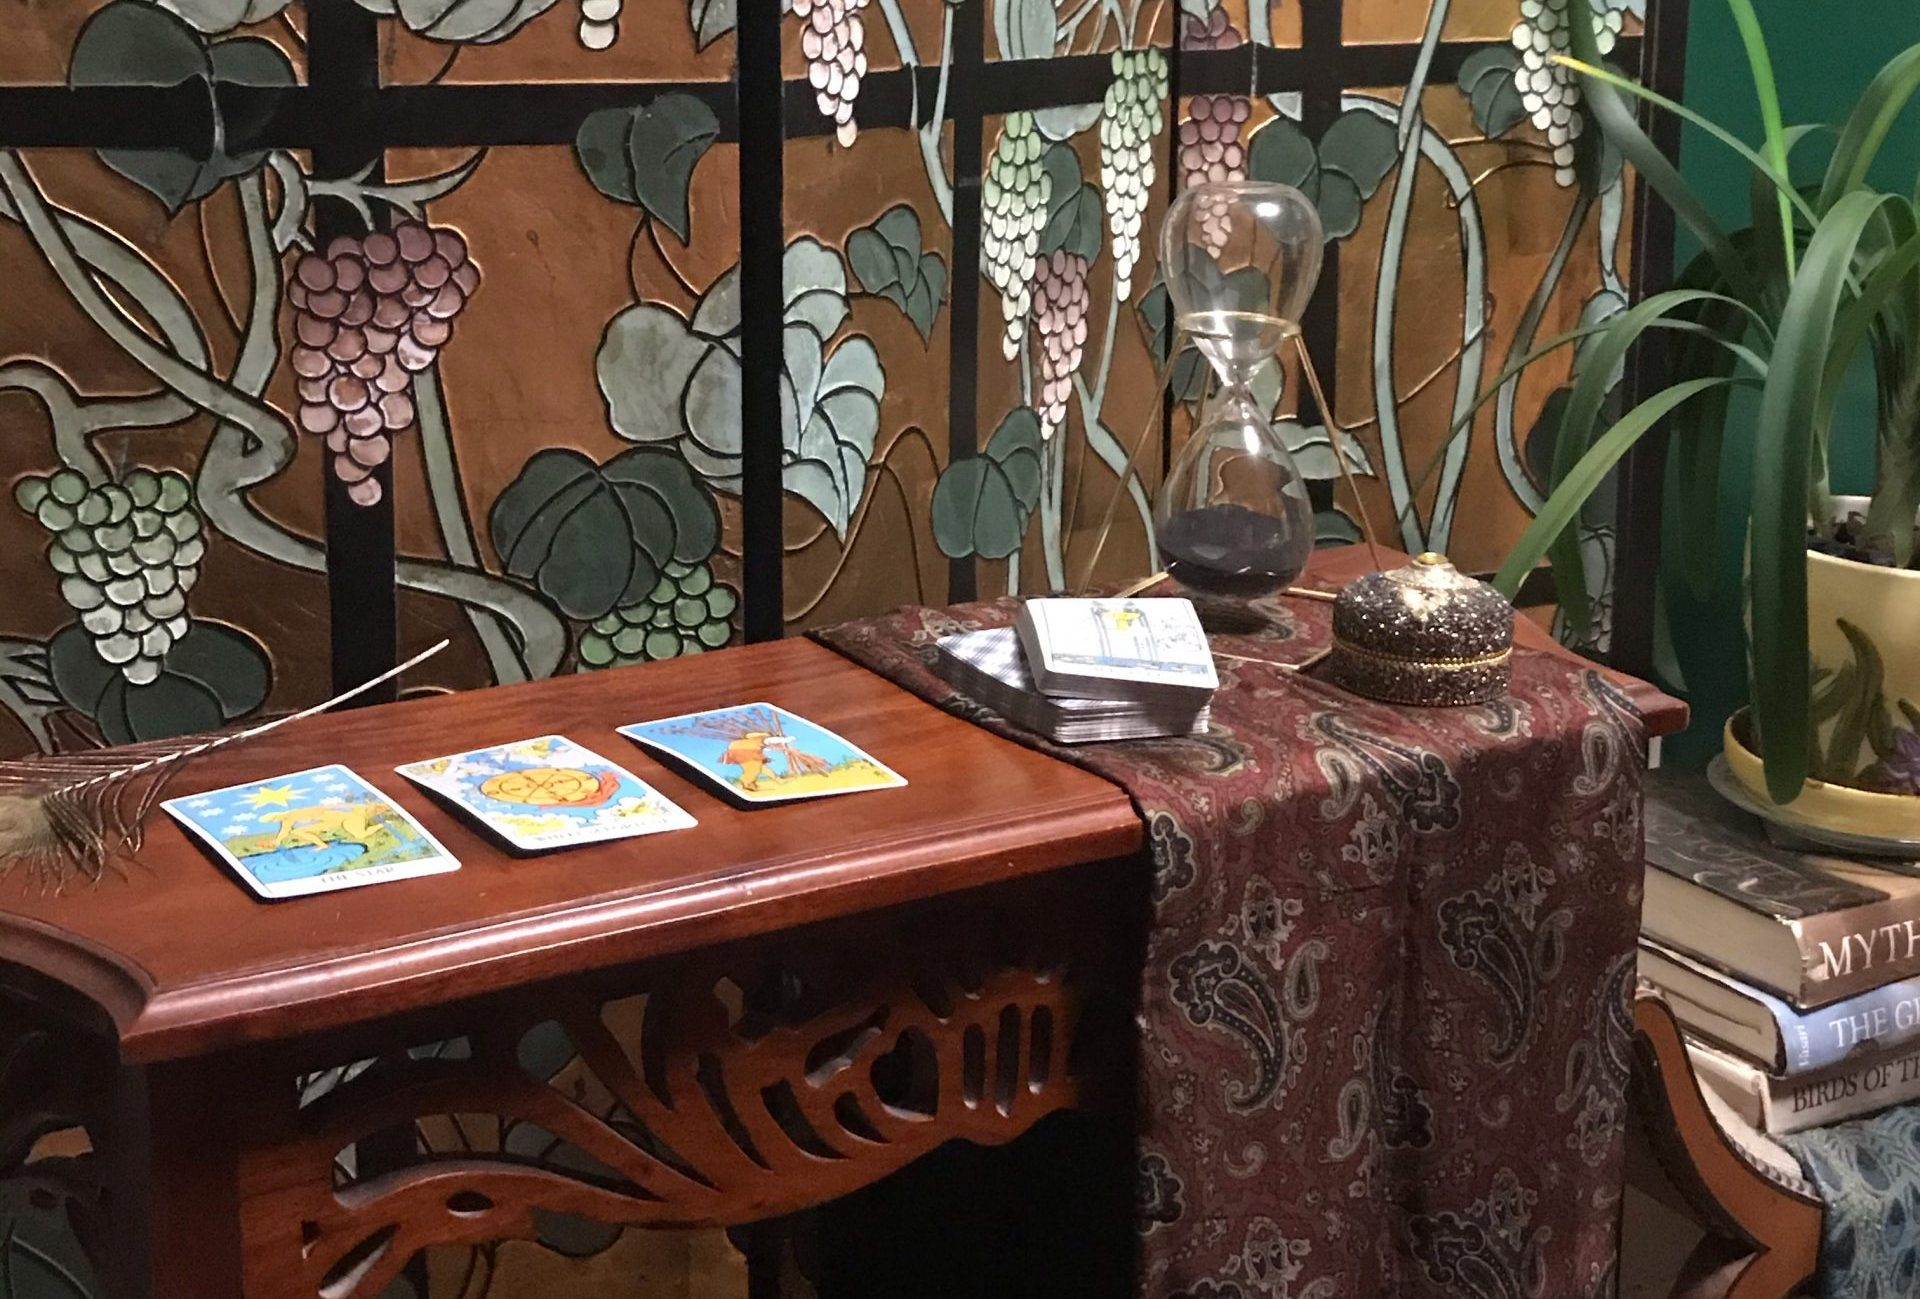 Tarot cards laid out on a table, with a room divider with grapes on it in the background.